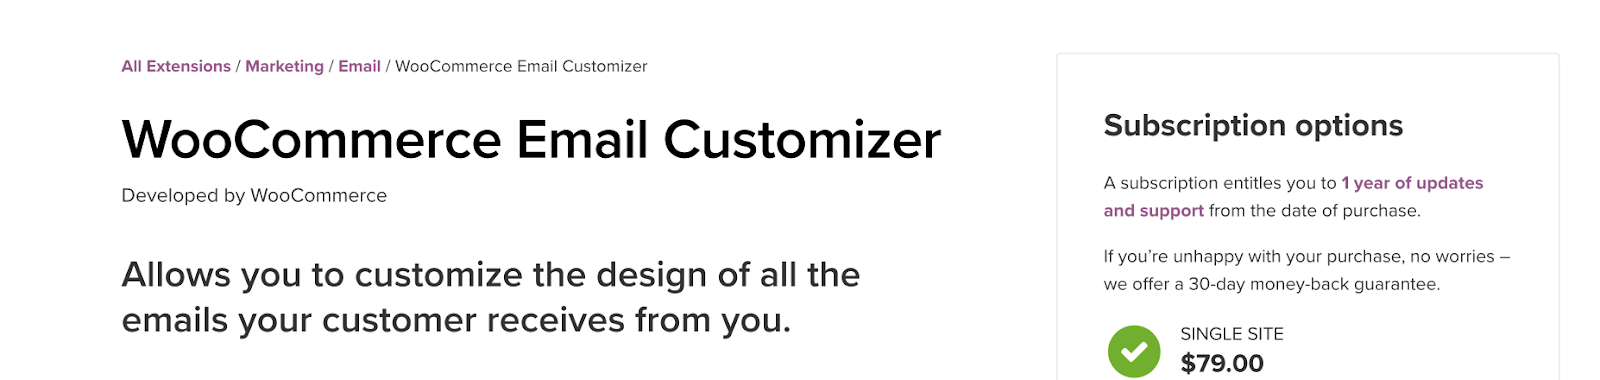 WooCommerce Email Customizer header image